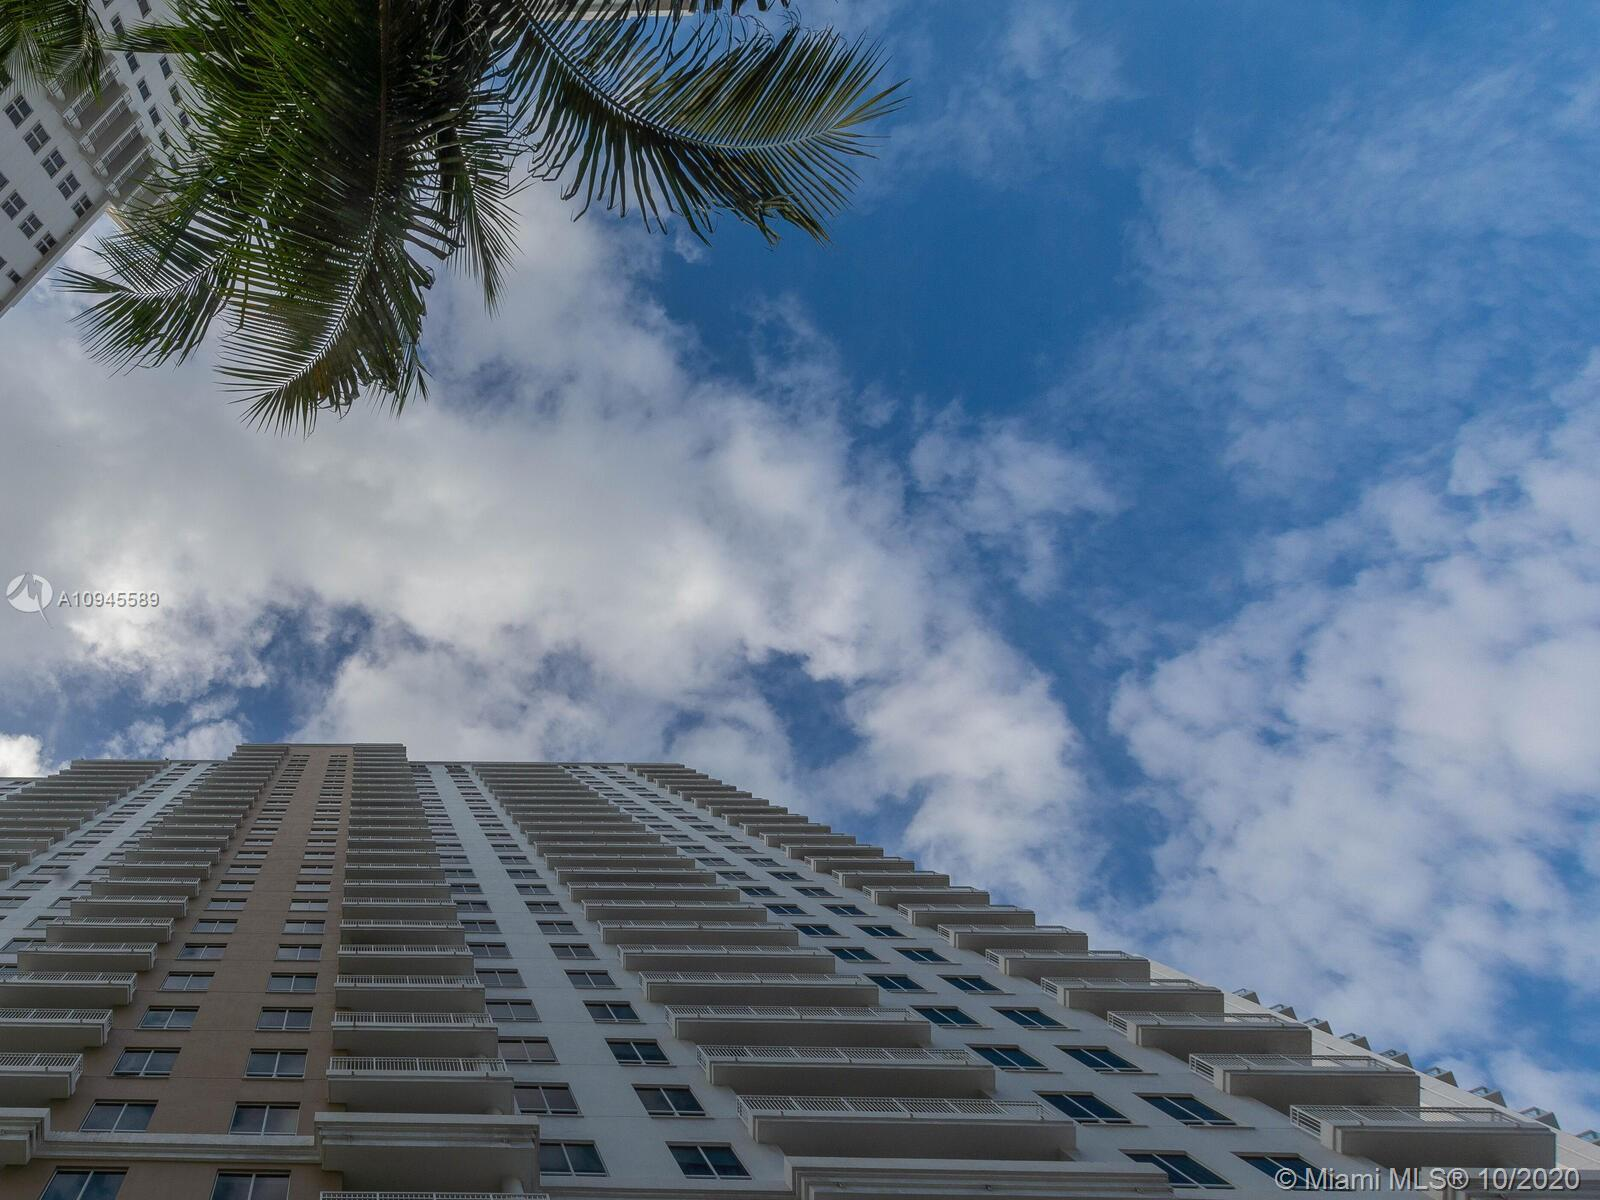 Courts Brickell Key #704 - 801 Brickell Key Blvd #704, Miami, FL 33131